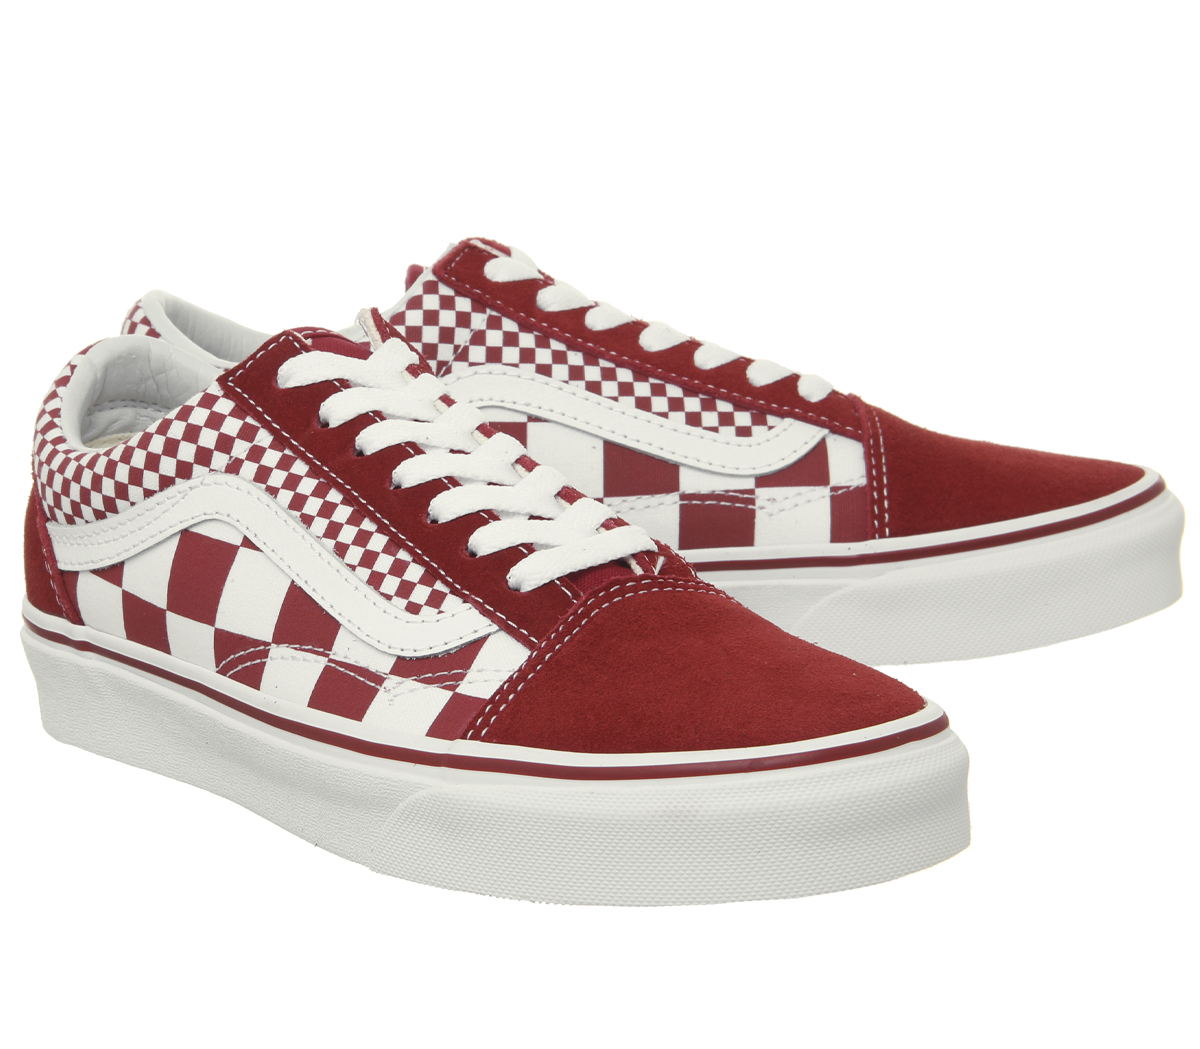 eff9d33957b Sentinel Mens Vans Old Skool Trainers Chilli Pepper Mix Check True White  Trainers Shoes